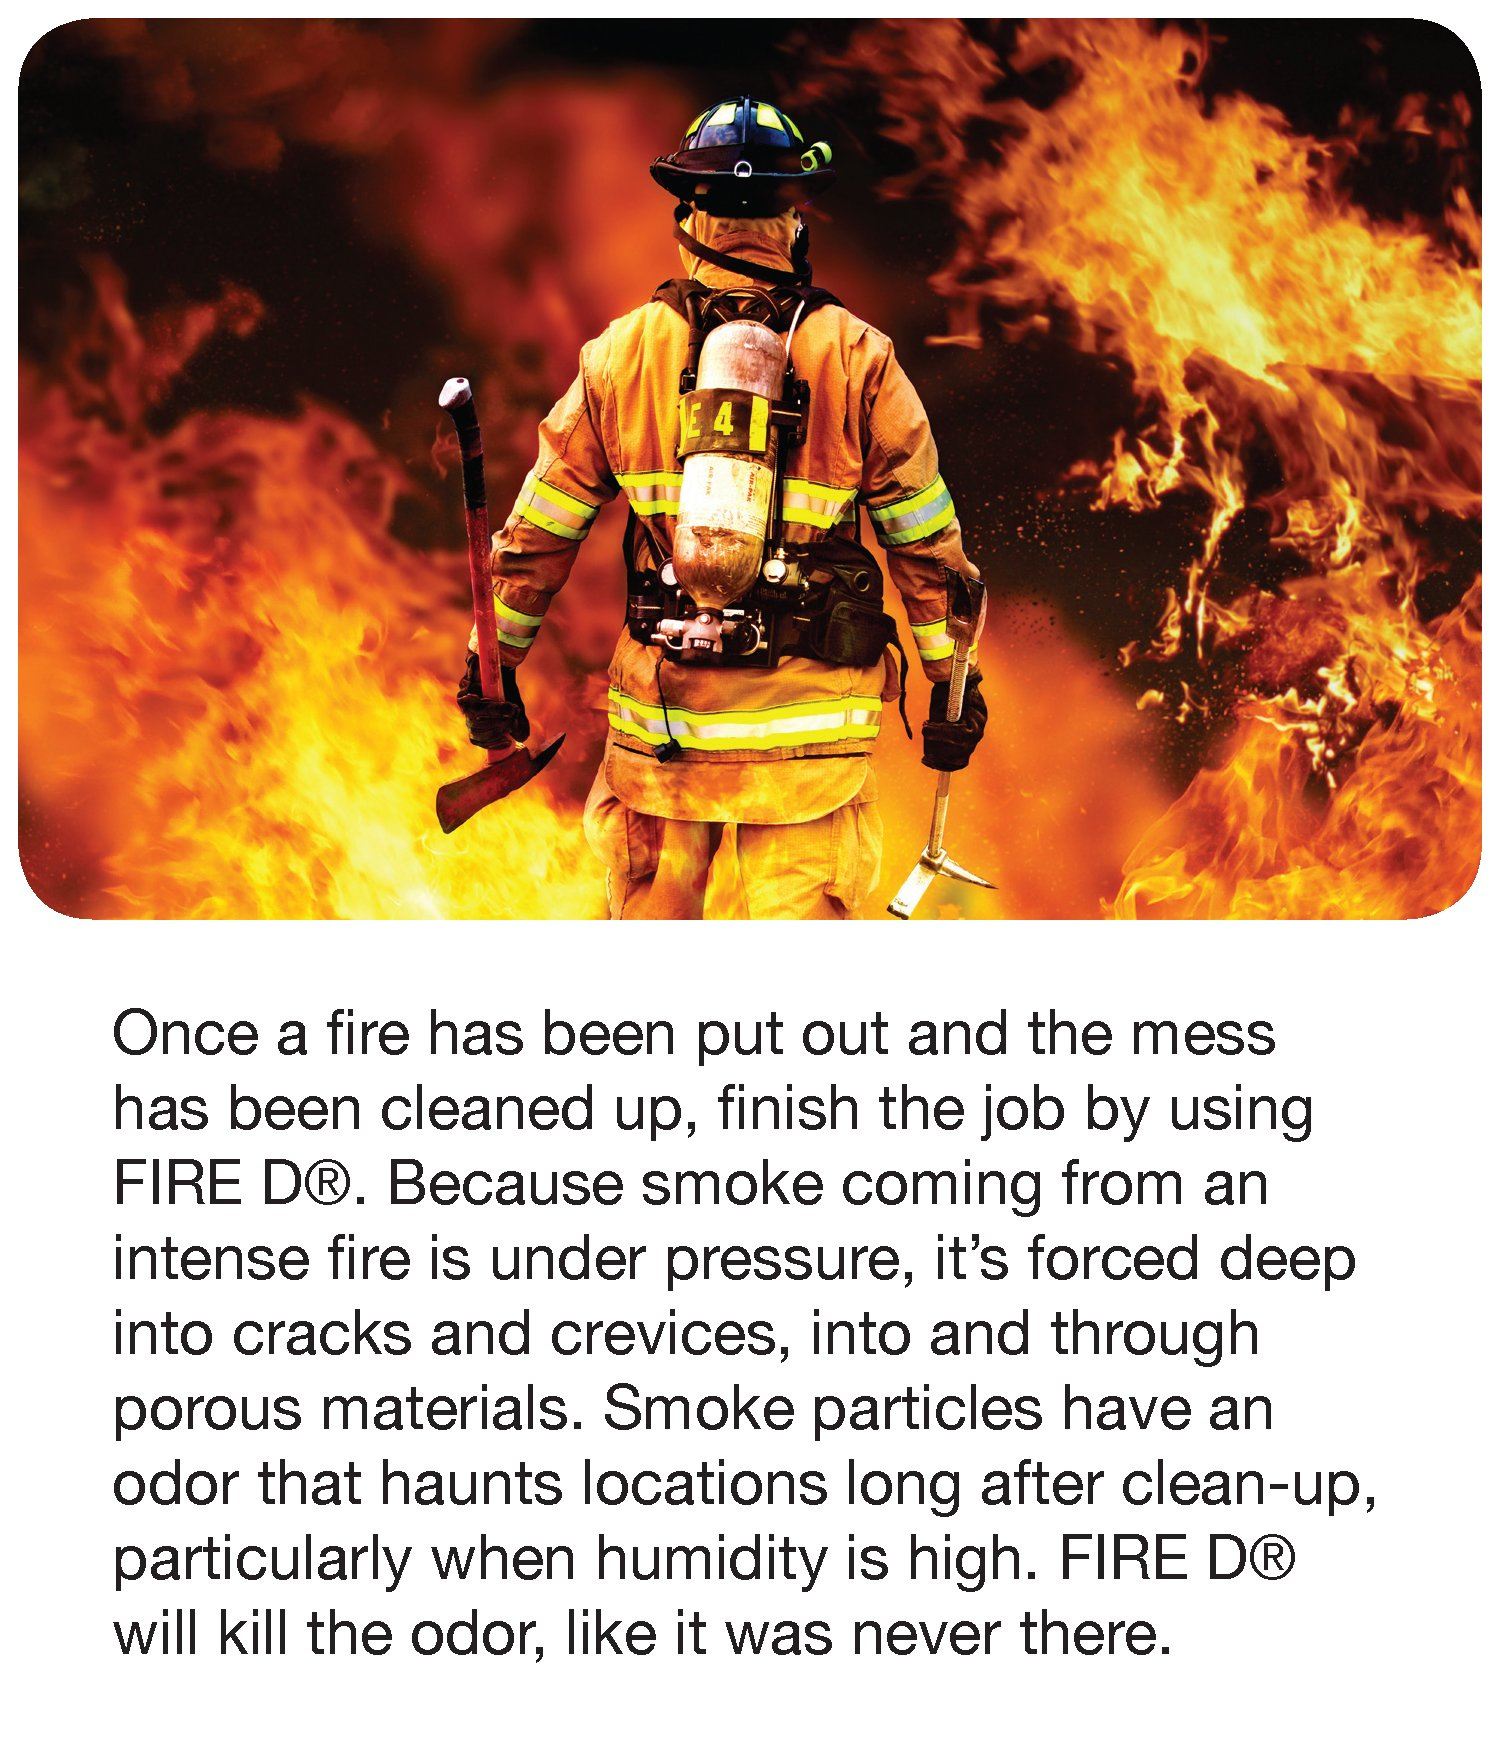 Big D 202 Fire D One Shot After Fire Odor Control Fogger, 5 oz (Pack of 12) - Kills odors from fire, flood, decomposition, cigarettes, musty smells - Ideal for use in cars, property management, hotels by Big D (Image #3)